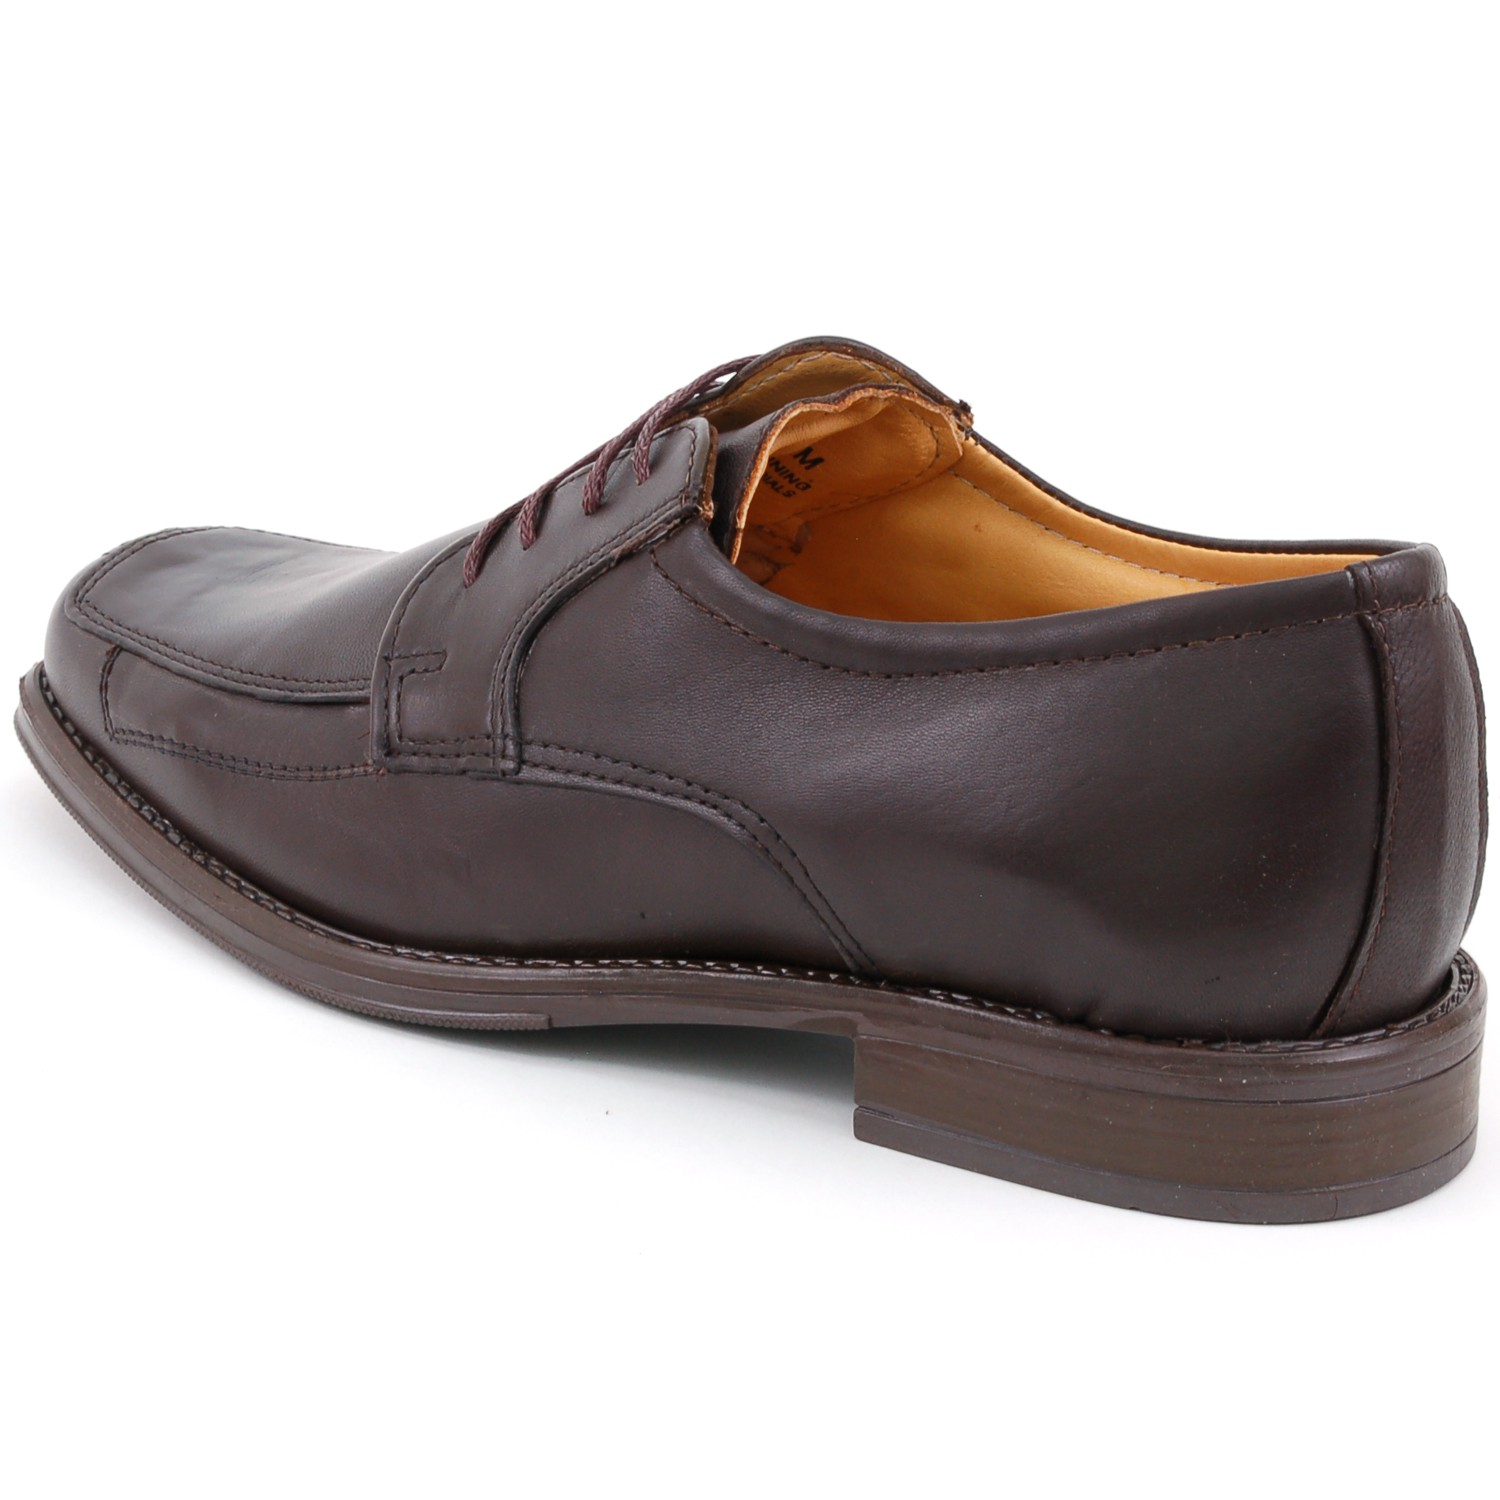 Mens-Lace-Up-Oxfords-Dress-Shoes-Genuine-Leather-Moc-Toe-Giorgio-Brutini-Padded thumbnail 15